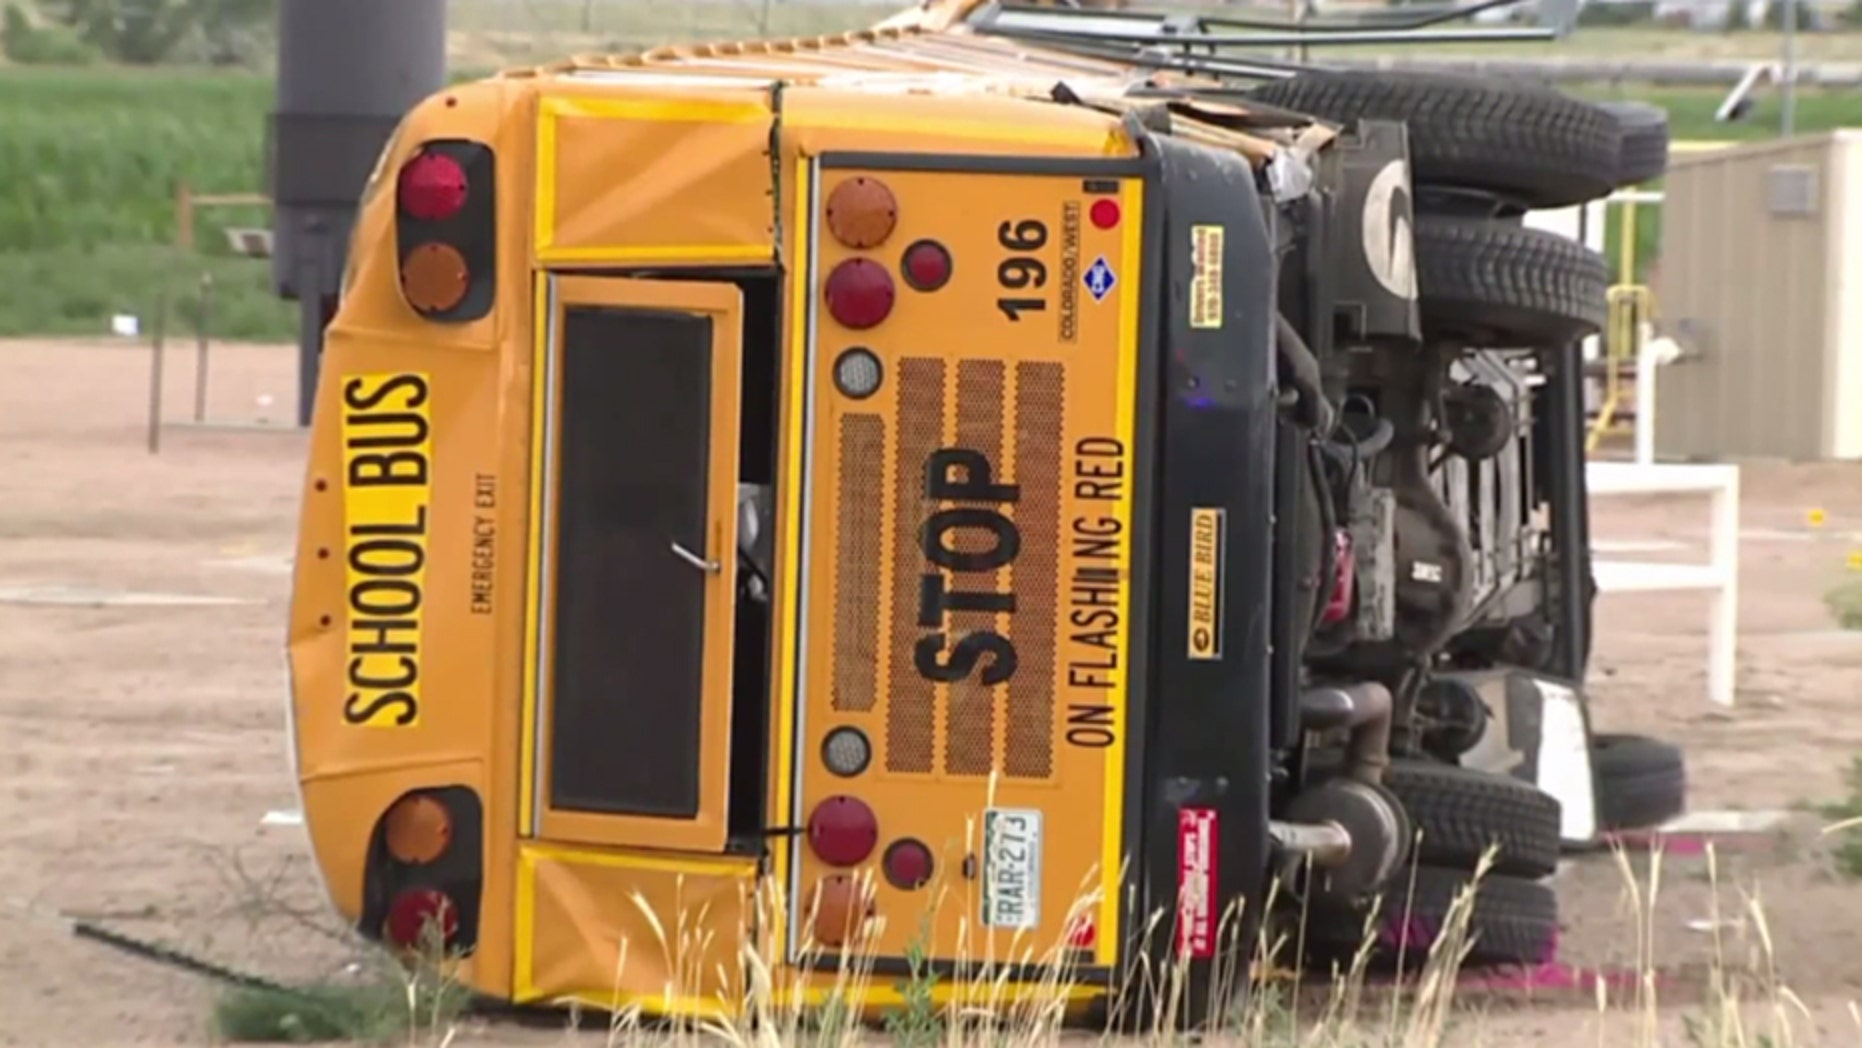 A school bus overturned in Colorado on Thursday after being run off the road.